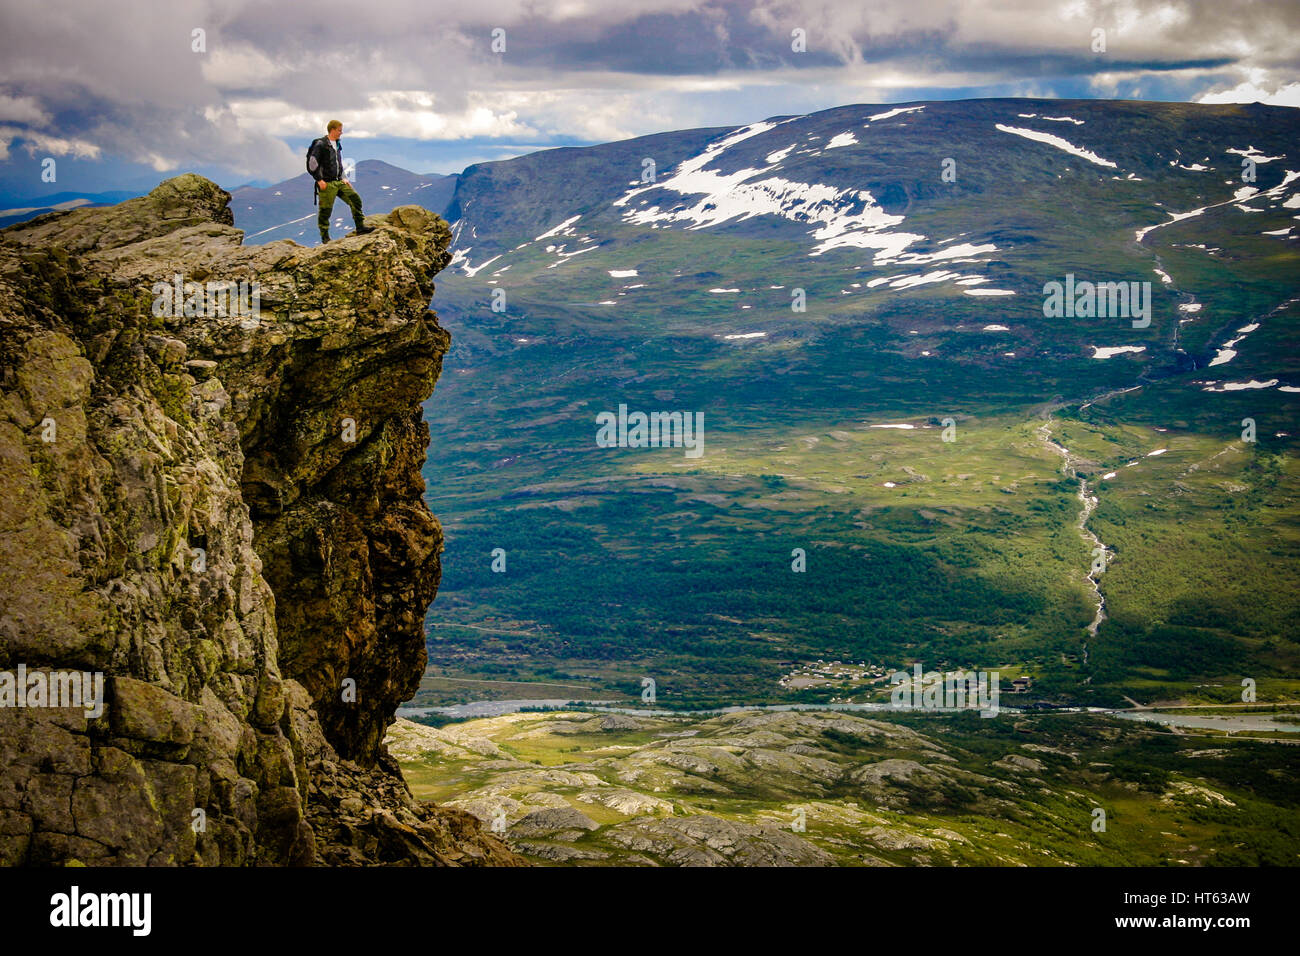 Man standing at edge of cliff at Mount Besseggen, Norway Stock Photo